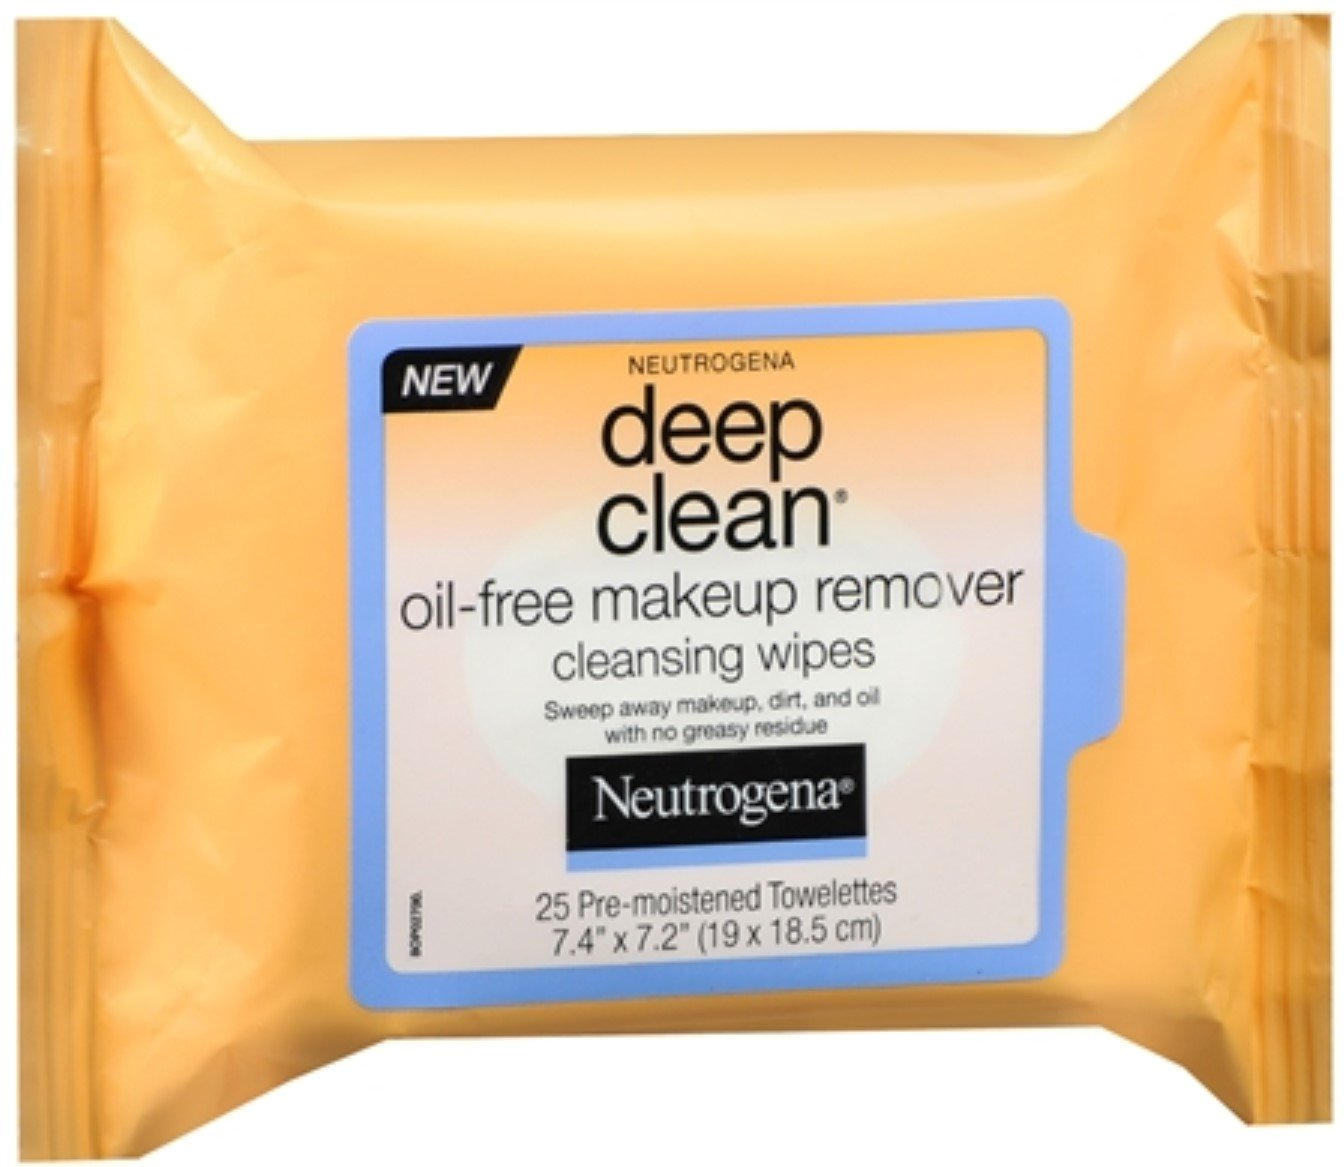 Neutrogena Deep Clean Oil-Free Makeup Remover Cleansing Wipes 25 Each (Pack of 4)